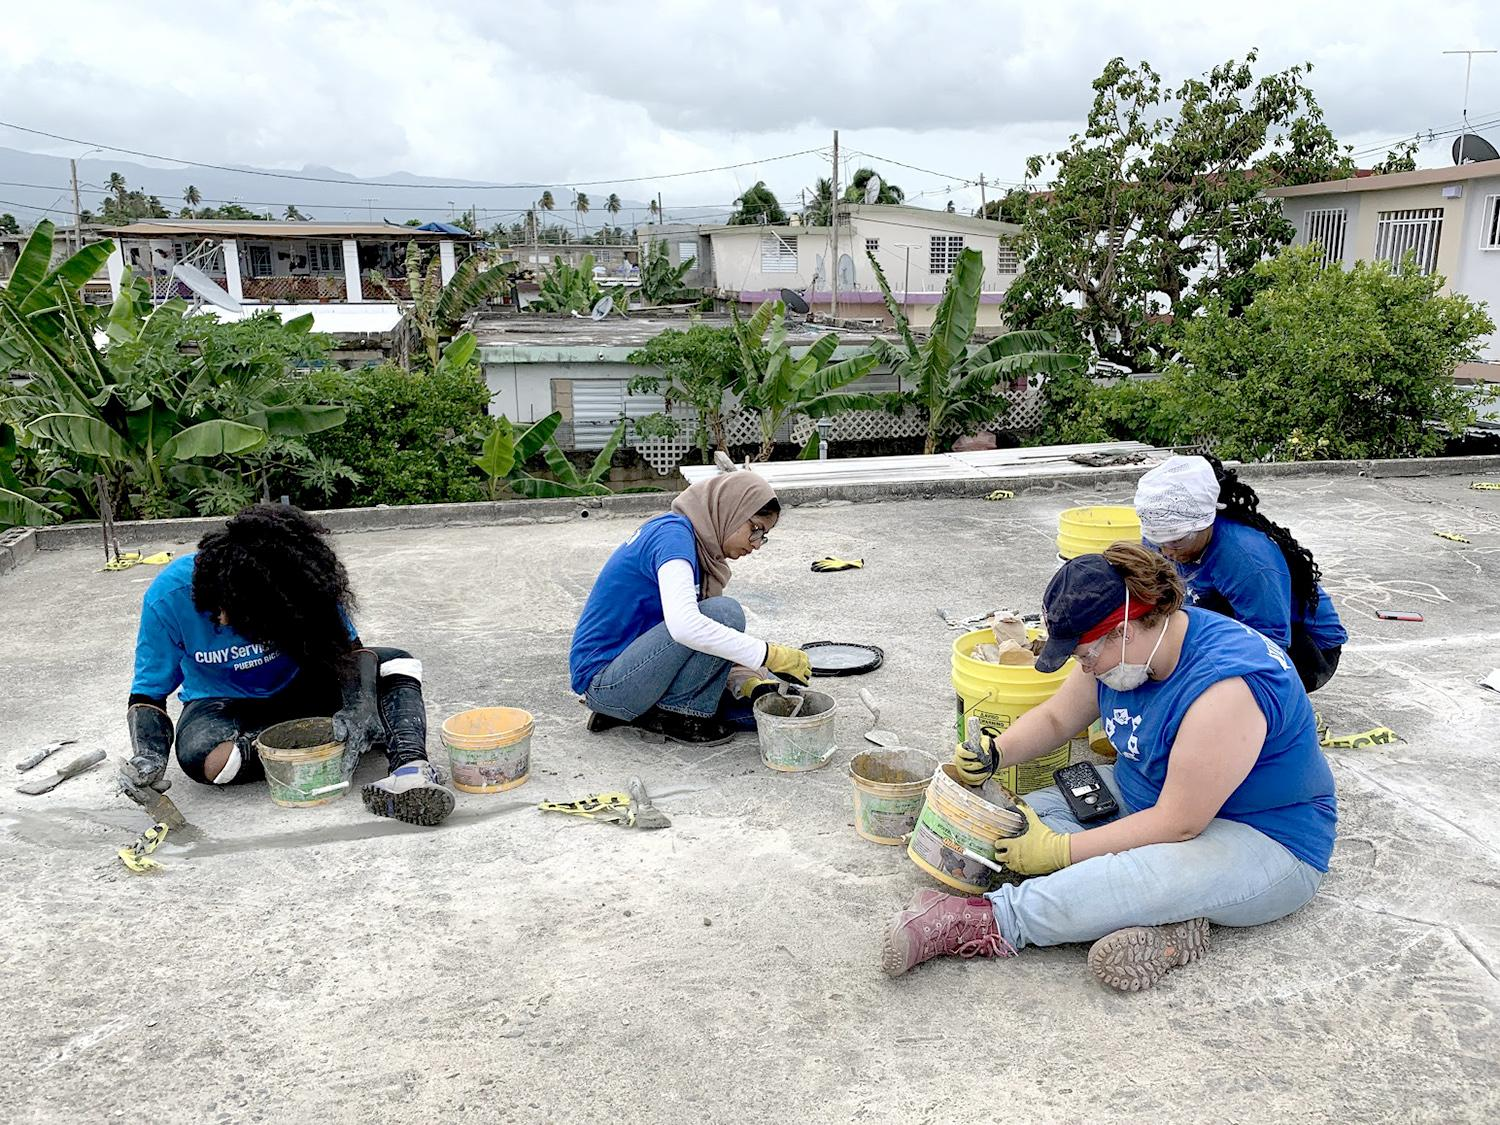 Students work on patching a roof in Puerto Rico